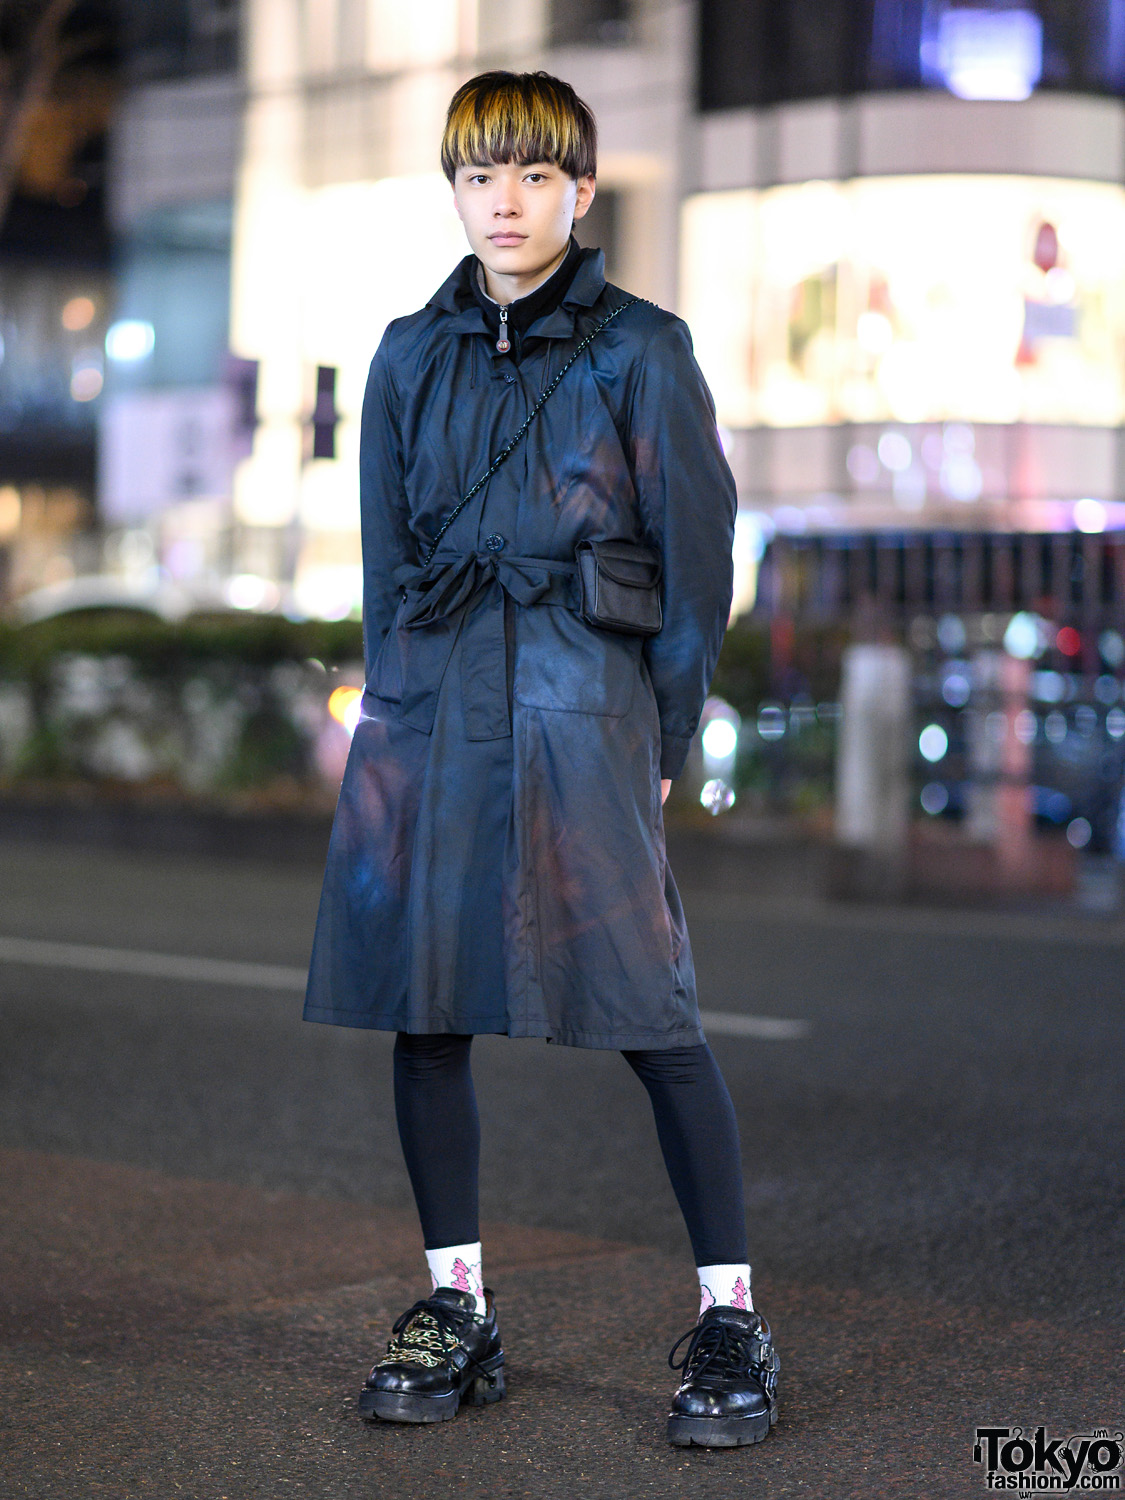 Harajuku Menswear Street Style w/ Belted Coat, San To Nibun No Ichi Turtleneck, Kirby Socks & New Rock Chain Shoes